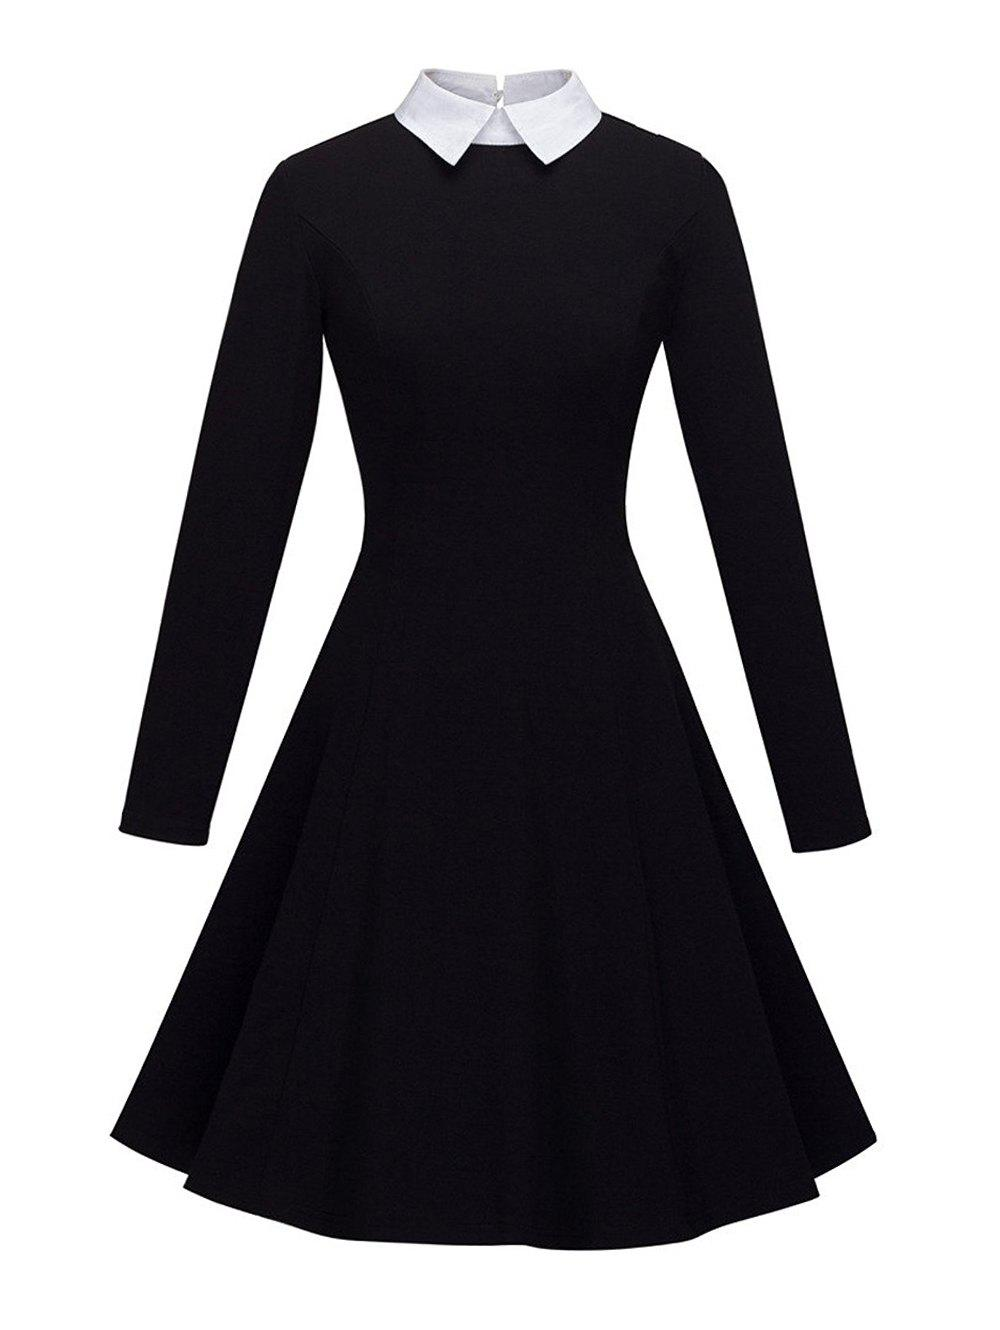 Women's Peter Pan Lapel Collar Long Sleeve  Fit and Flare Dress - BLACK S